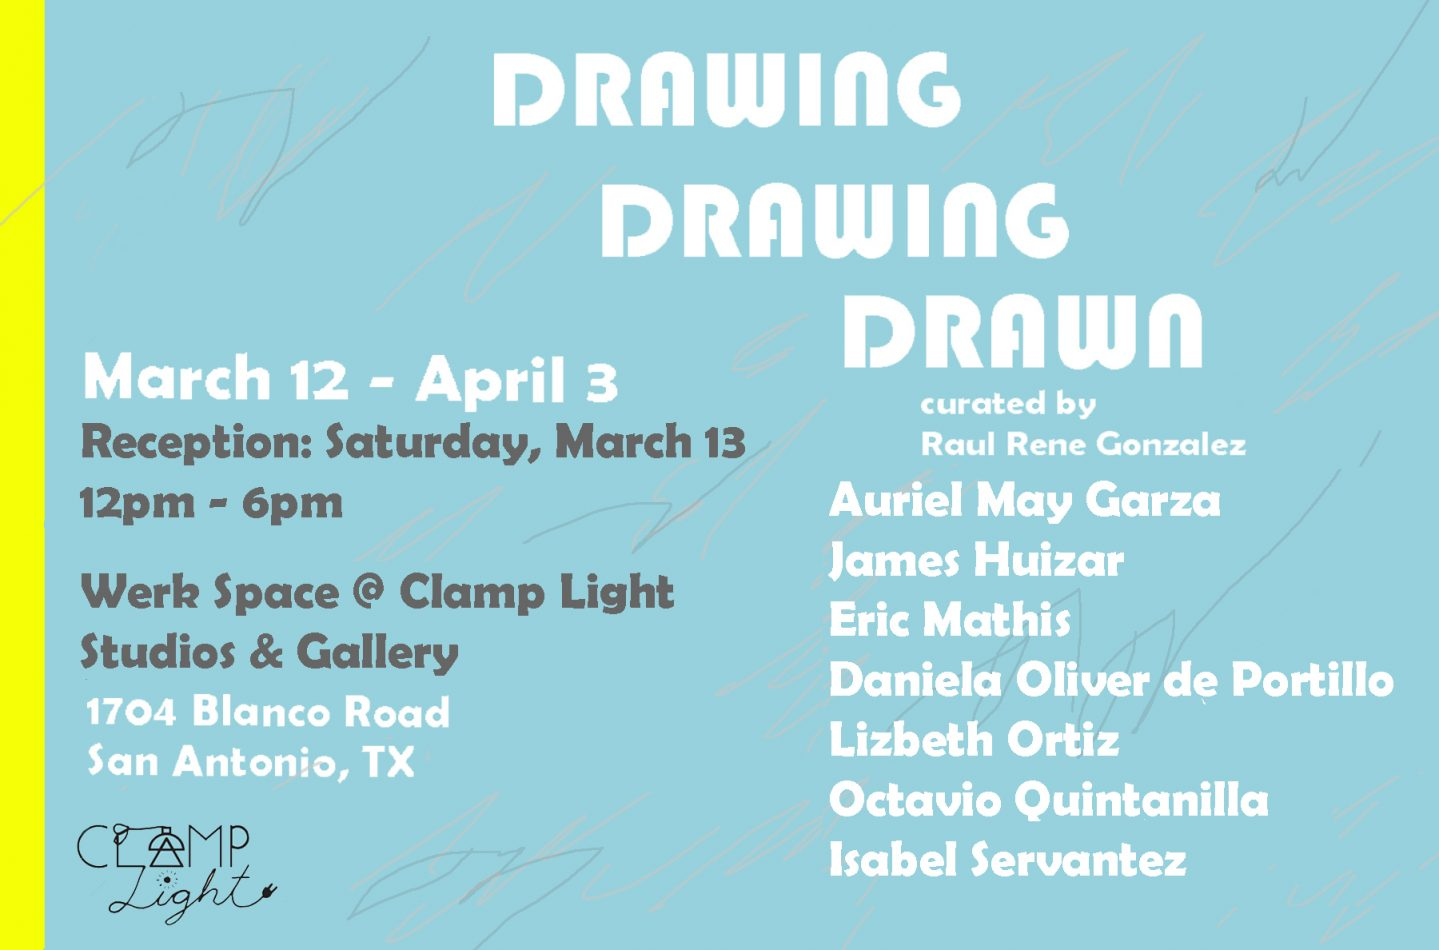 Public Reception for Drawing, Drawing, Drawn